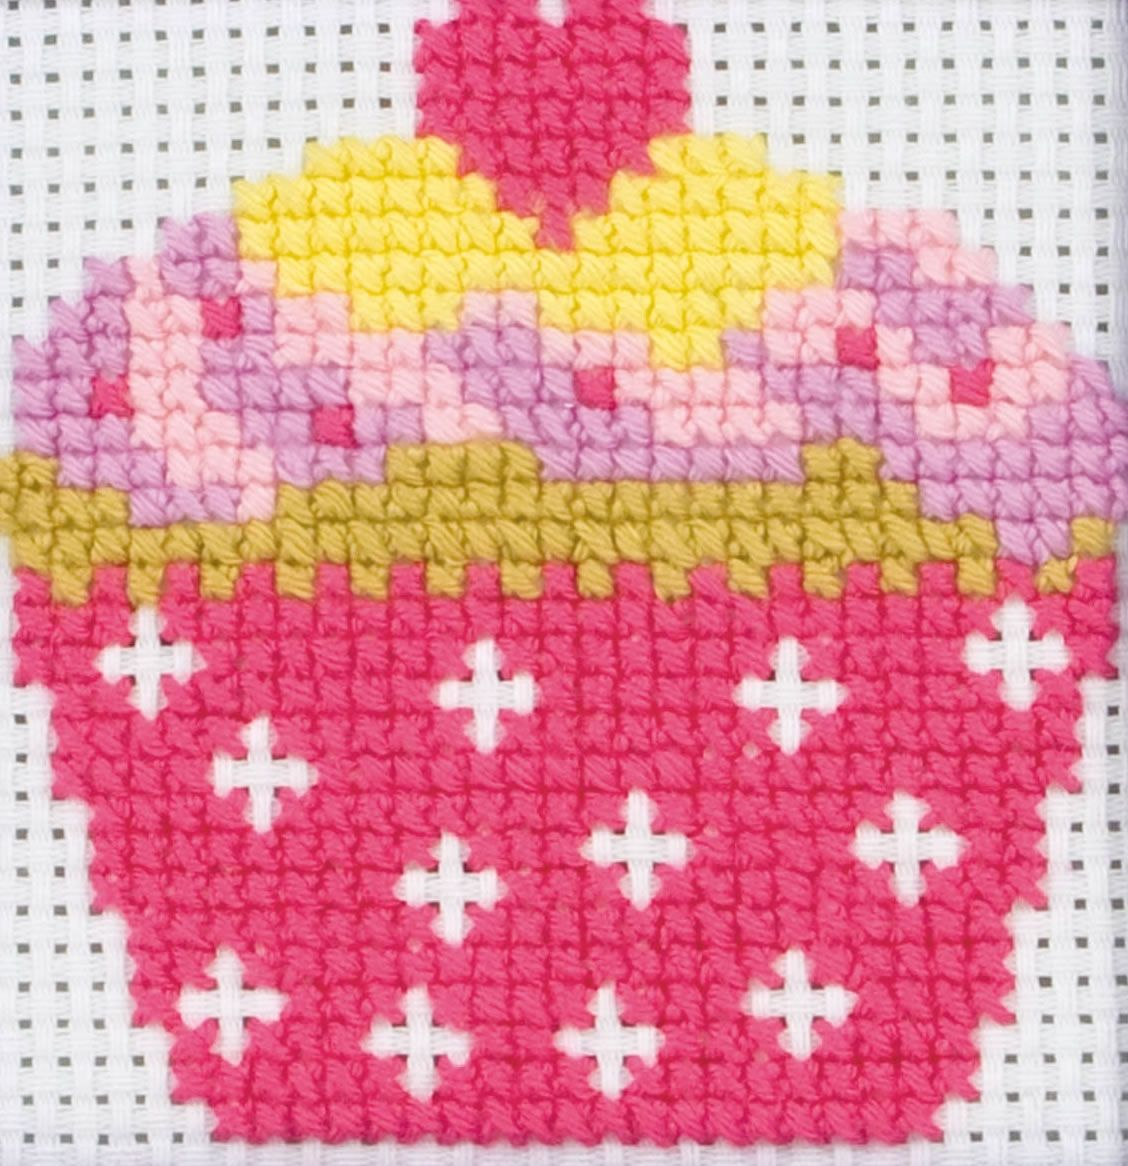 Blog Post - What To Look For In A Beginner's Cross Stitch Kit - 21/03/2013 - Past Impressions